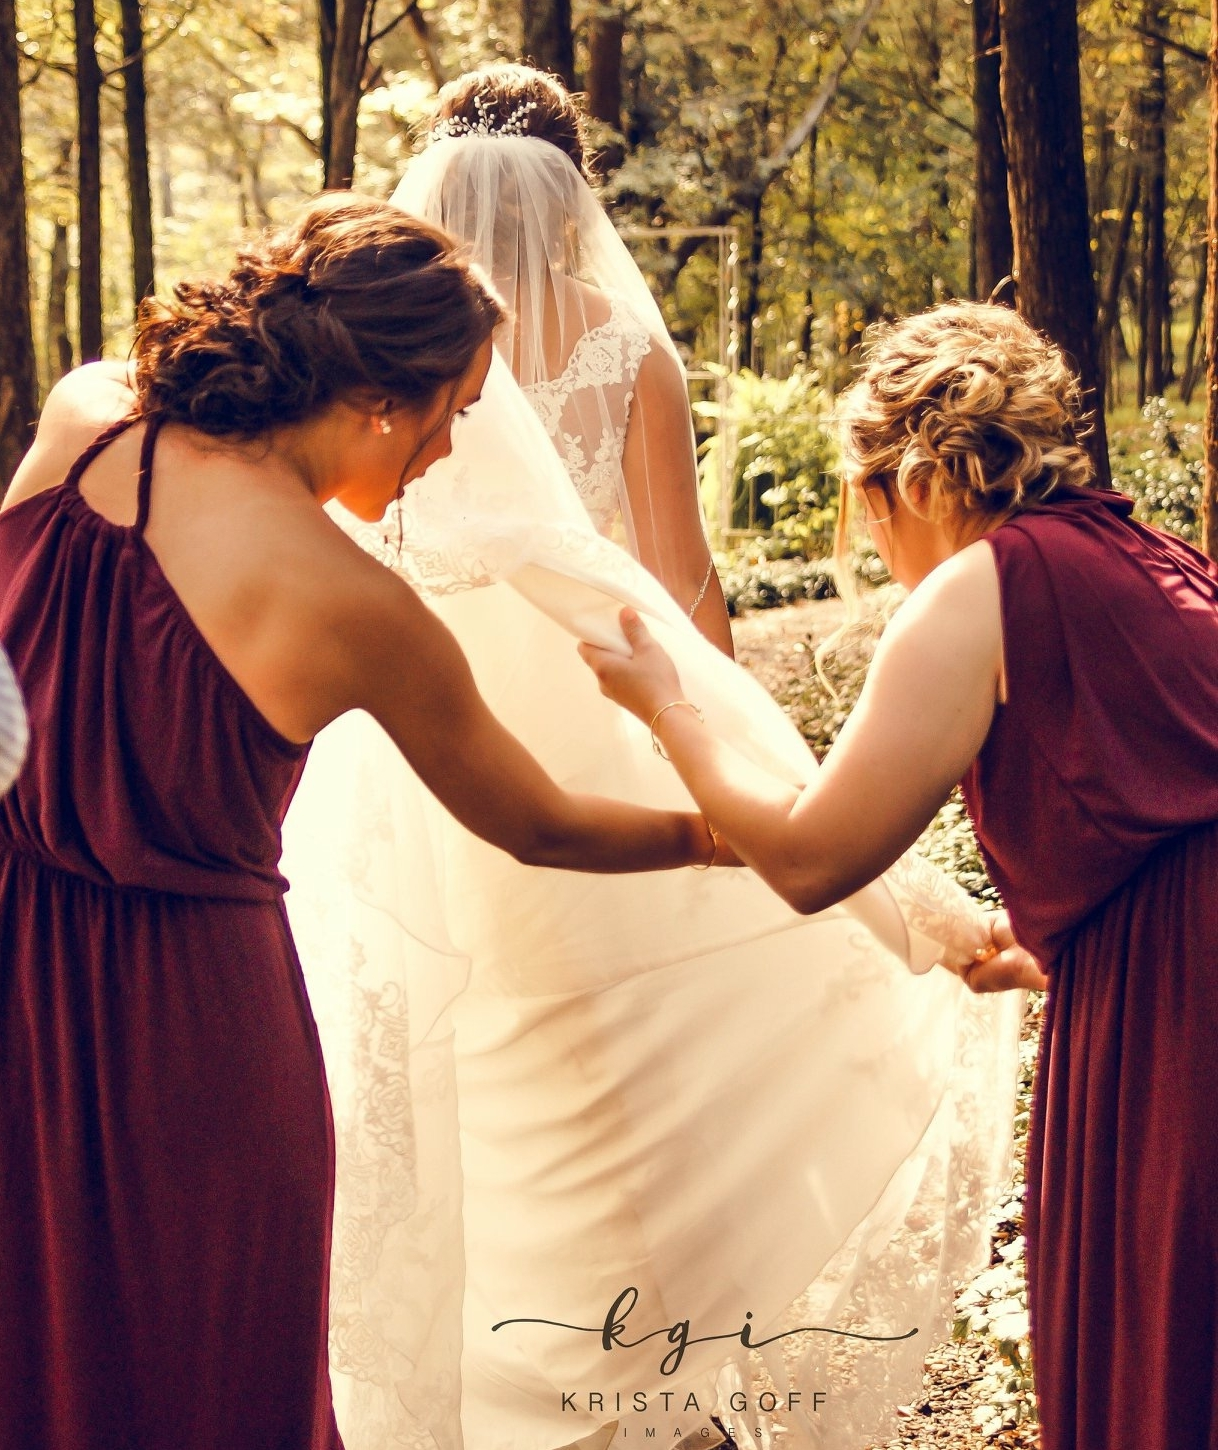 Wedding Packages - Consult Only - Call today for a consultation for your big day!